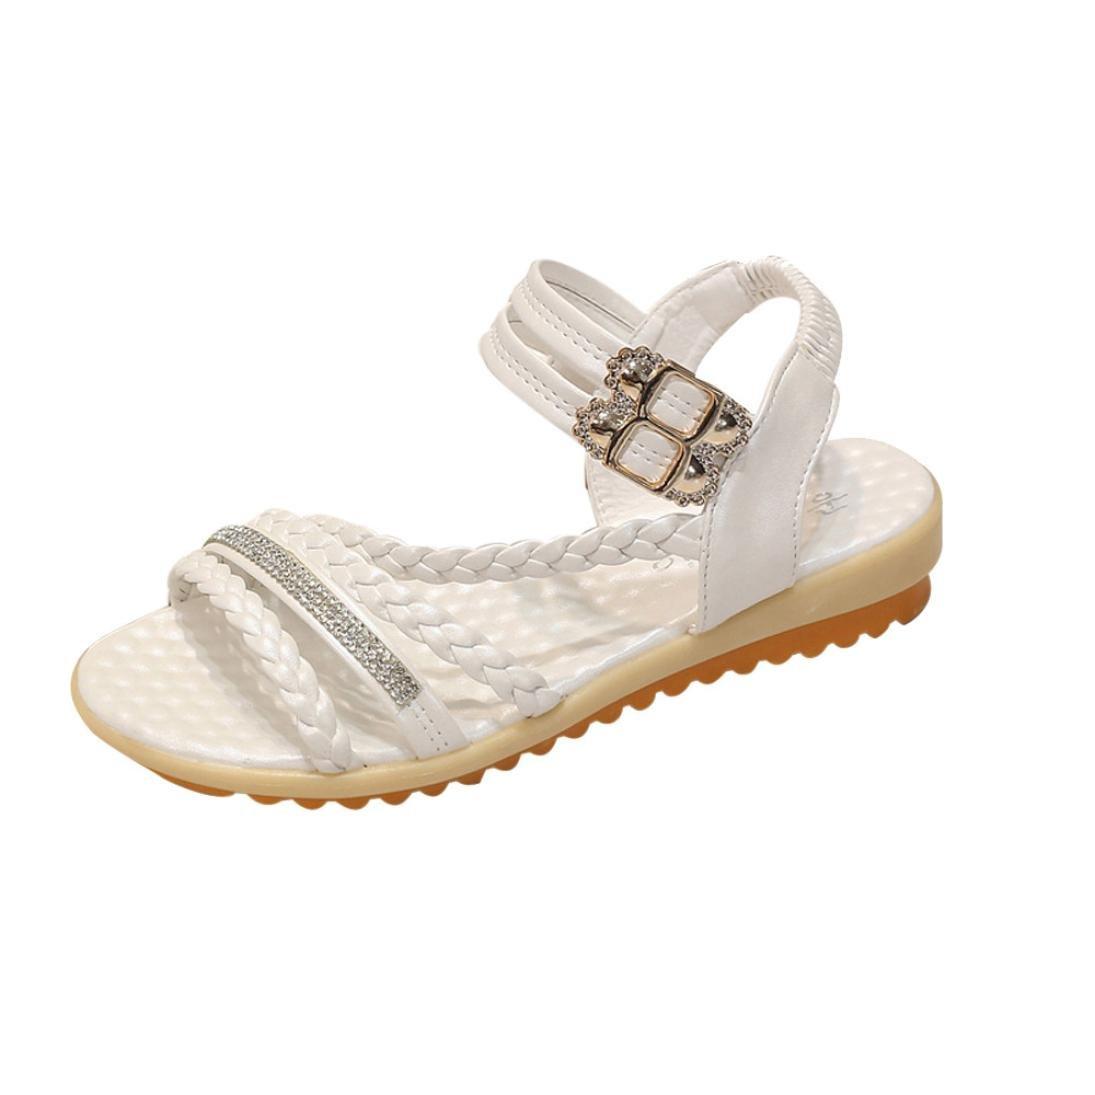 Transer Women Fashion Summer Slope With Flip Flops Sandals Loafers Shoes (7, White)